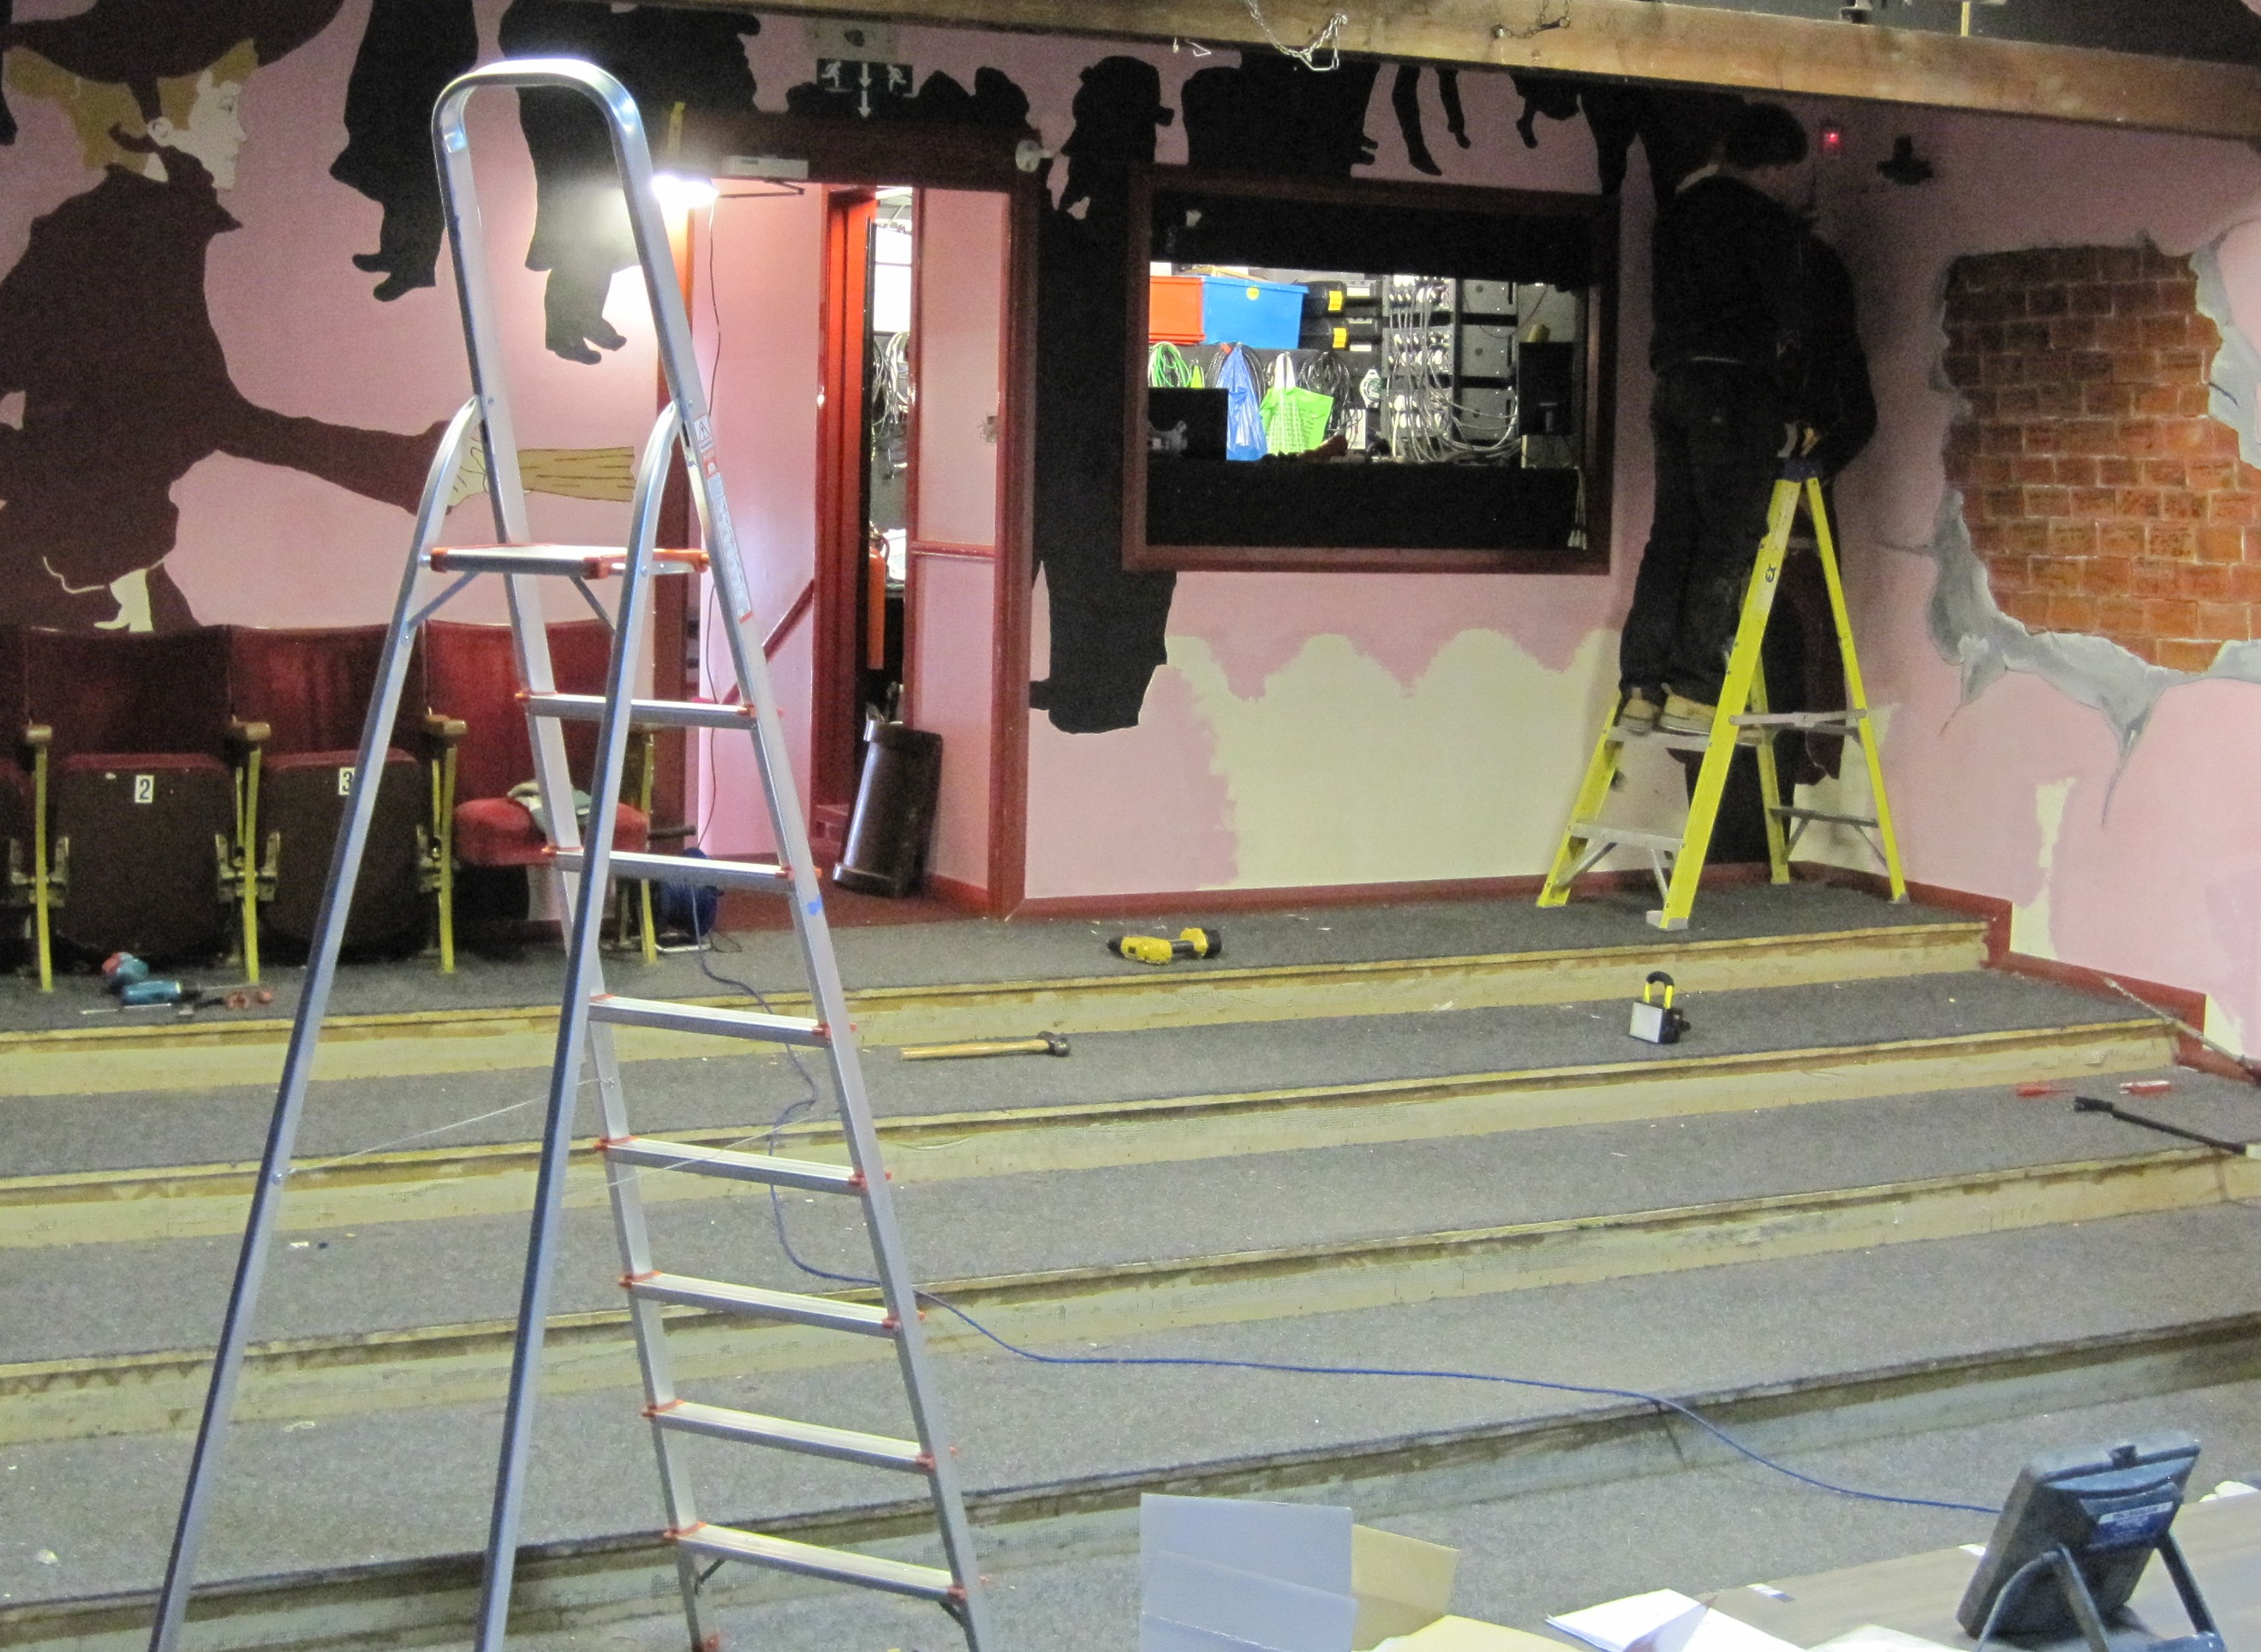 Auditorium at Dibble Tree Theatre during refurbishment once old seats removed